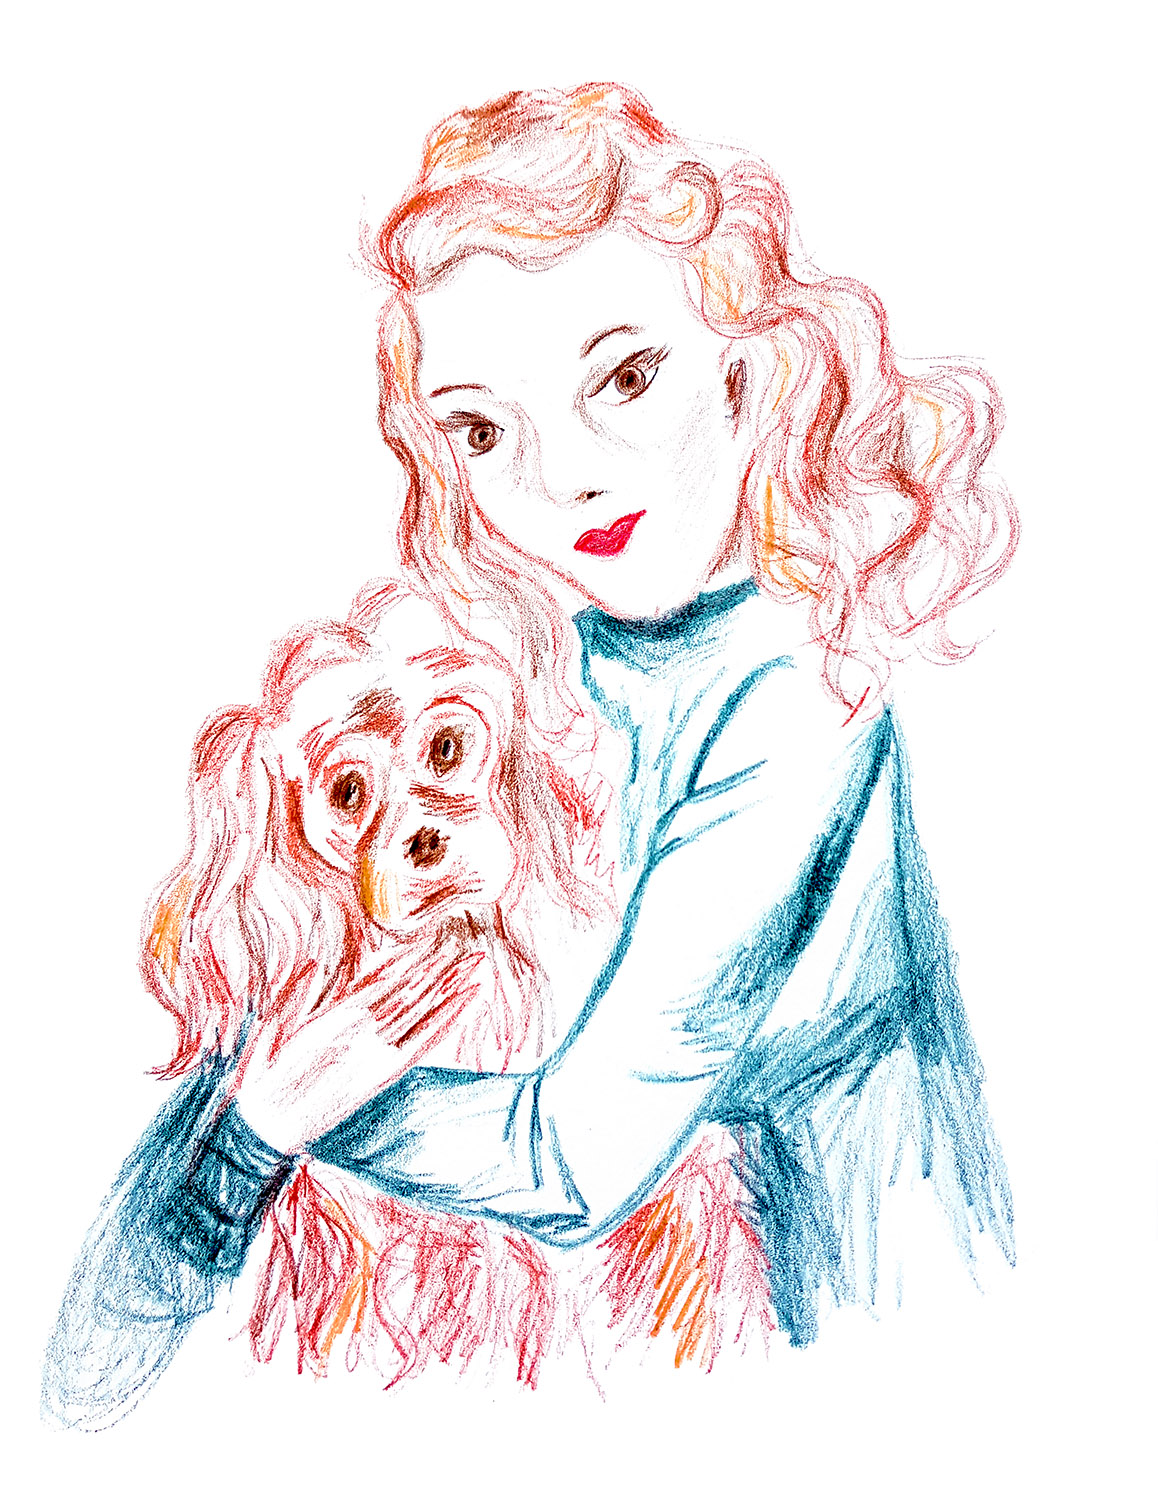 Lady with the red hair & dog, Rebecca Johnstone